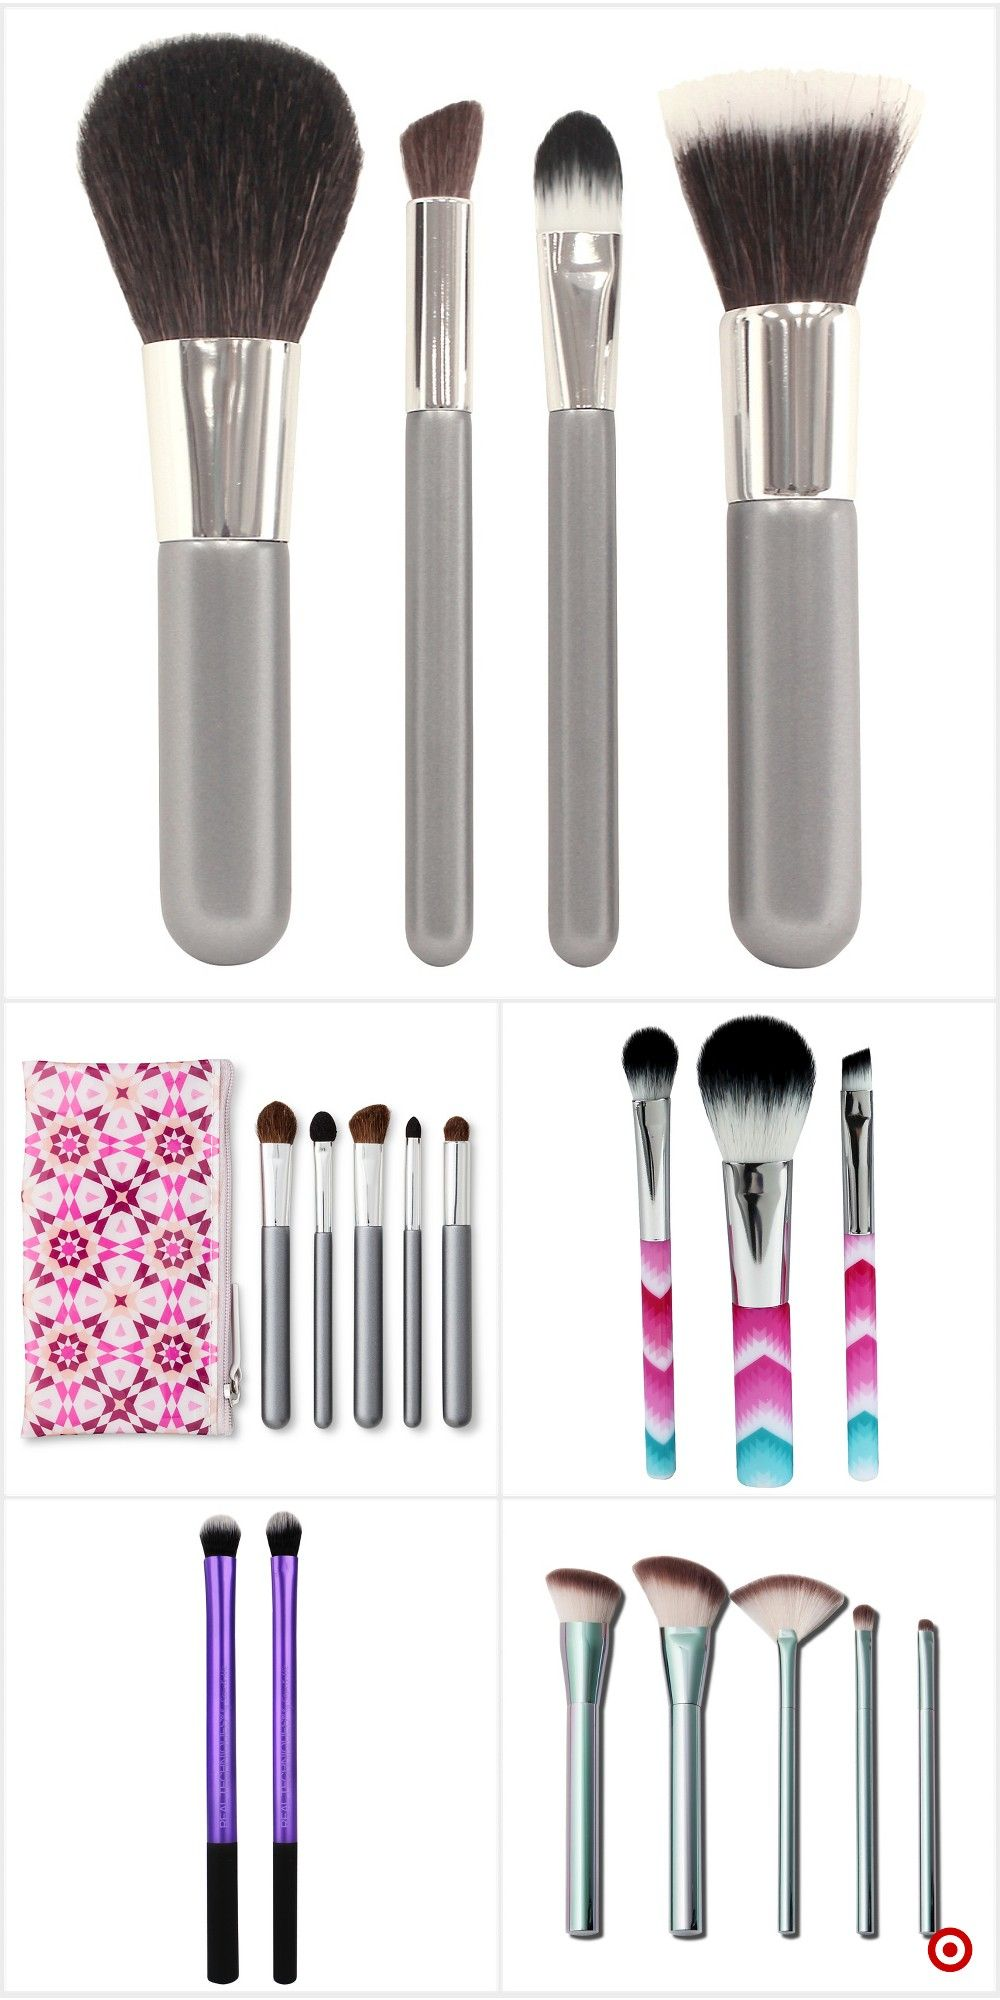 Shop Target for makeup brushes and sets you will love at